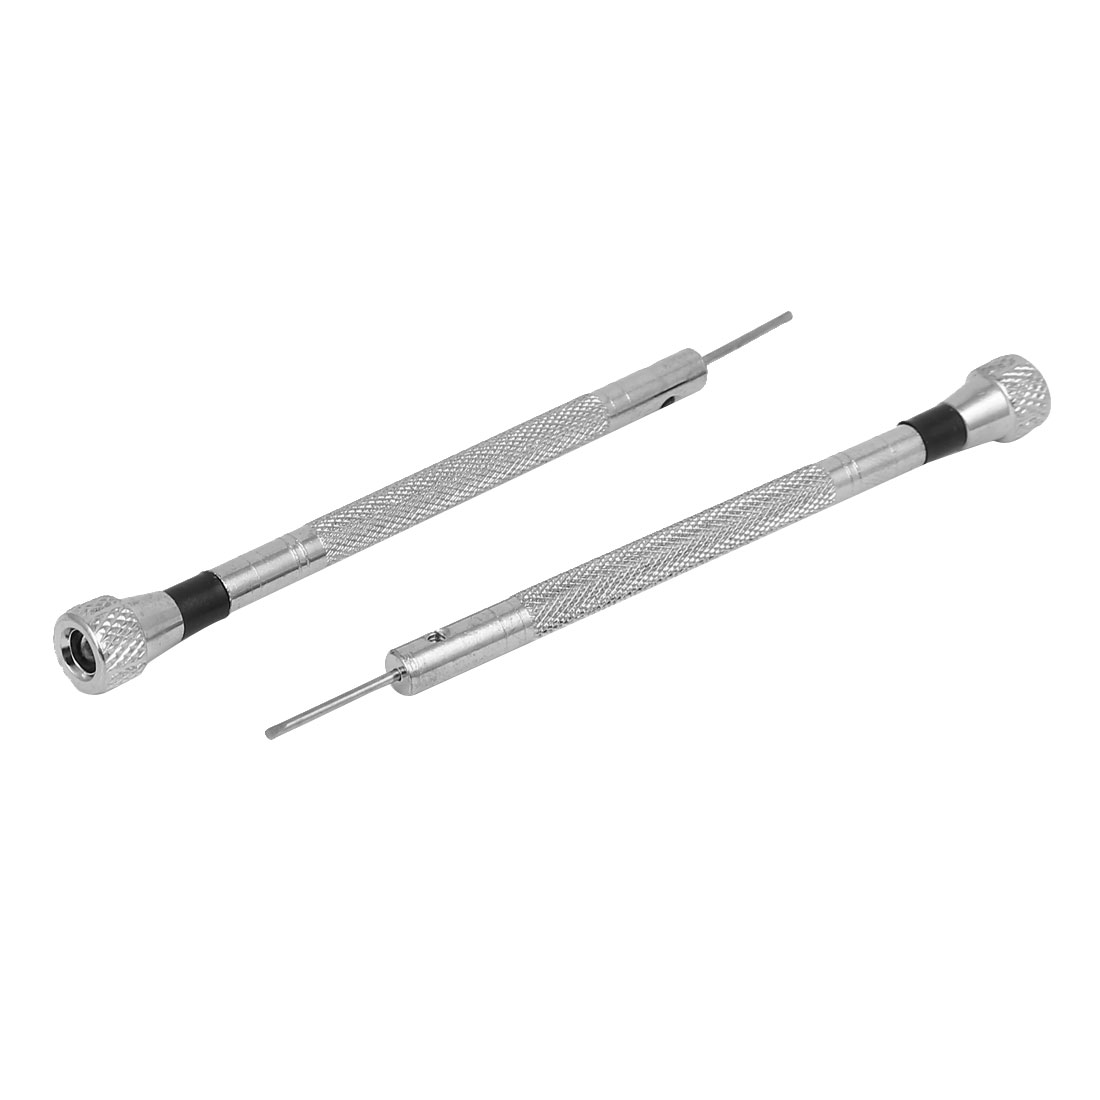 90mm Long 1mm Width Flat Blade Slotted Screwdriver Watch Repairing Tool 2pcs